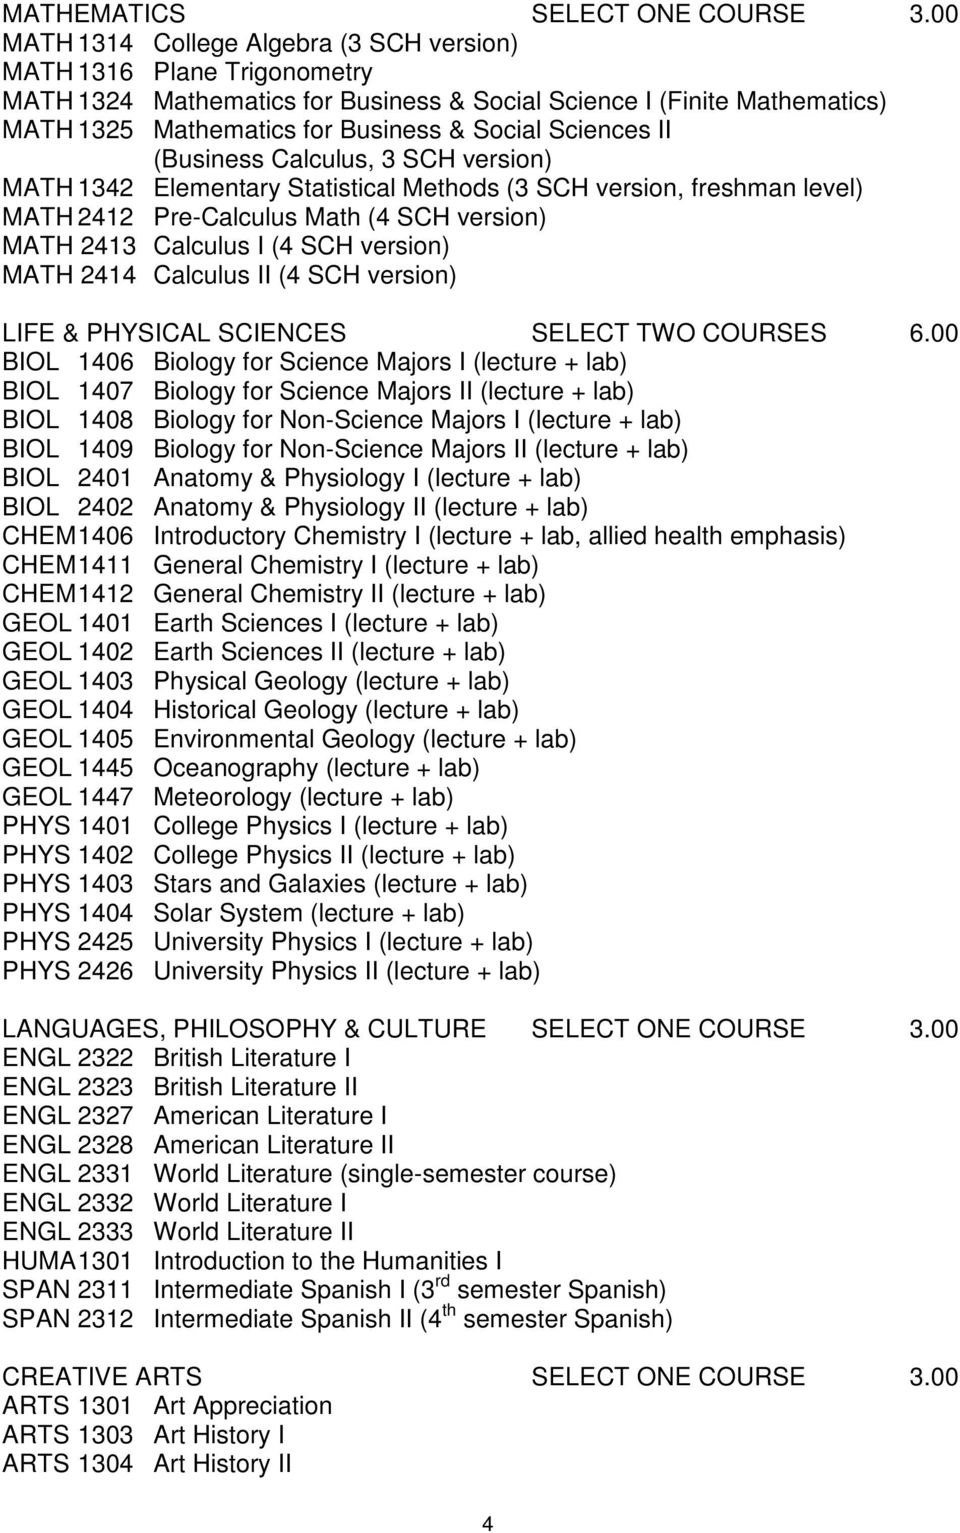 Sciences II (Business Calculus, 3 SCH version) MATH 1342 Elementary Statistical Methods (3 SCH version, freshman level) MATH 2412 Pre-Calculus Math (4 SCH version) MATH 2413 Calculus I (4 SCH